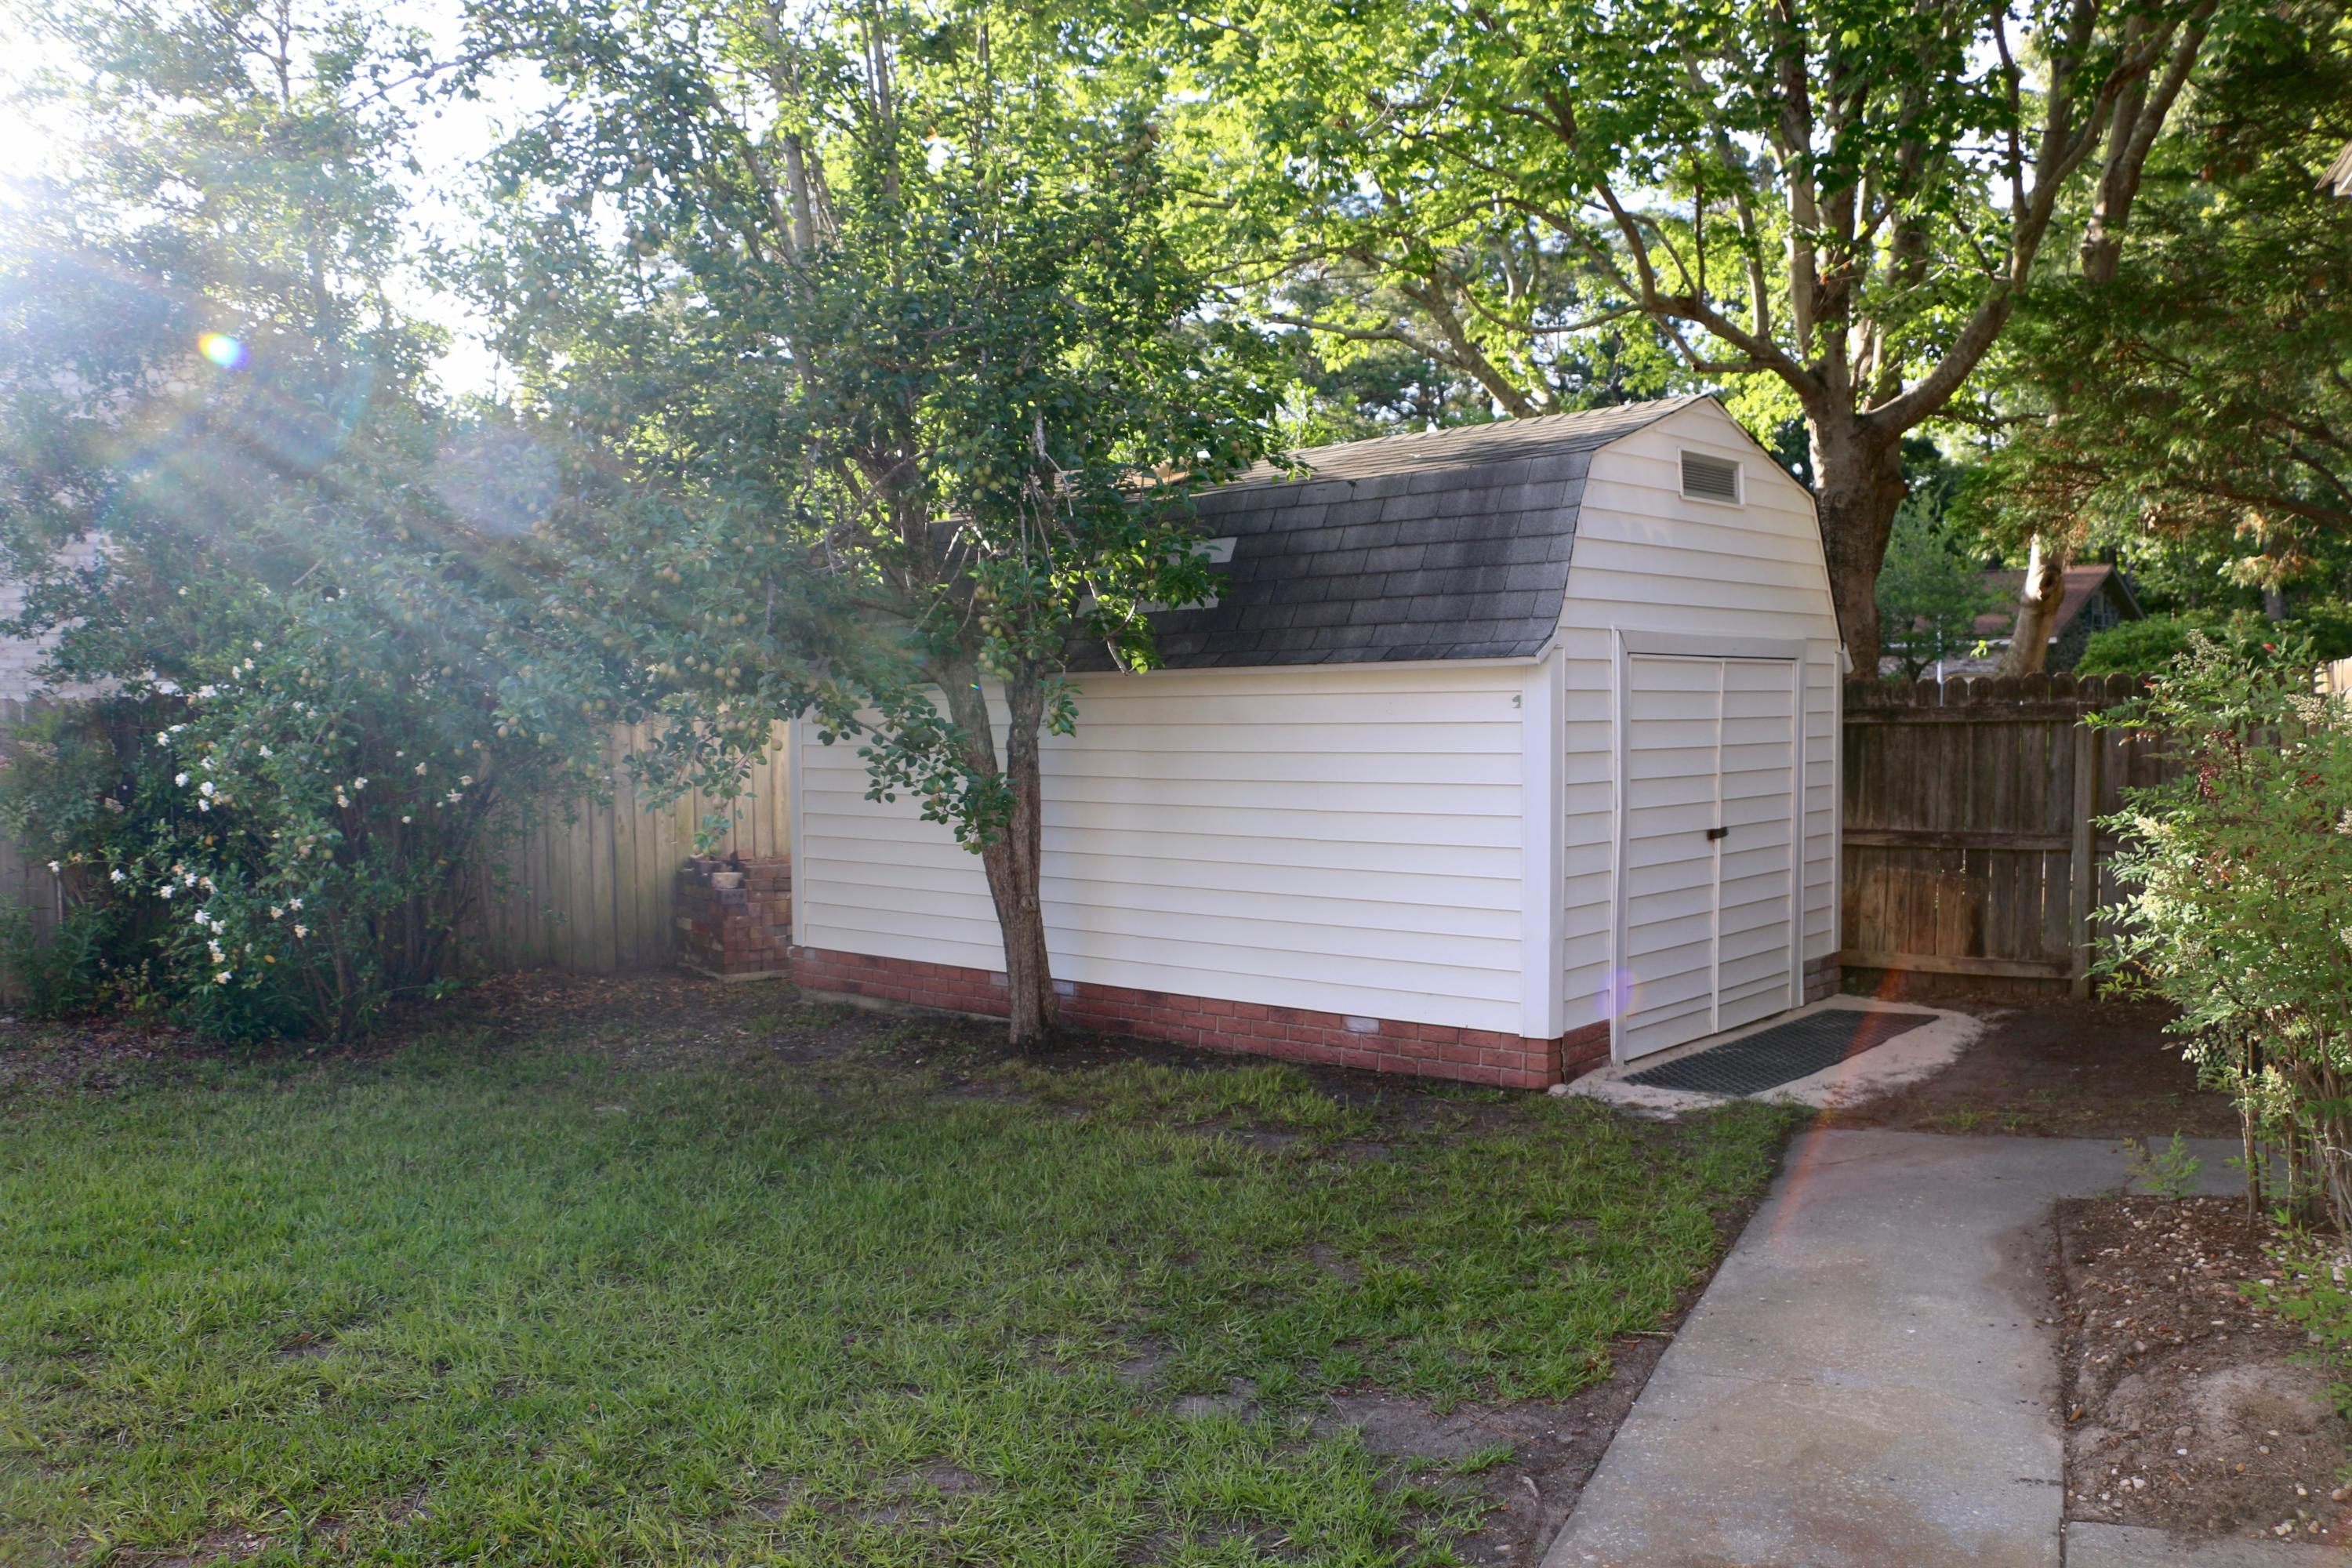 Photo of 25 S Basilica Ave, Hanahan, SC 29410